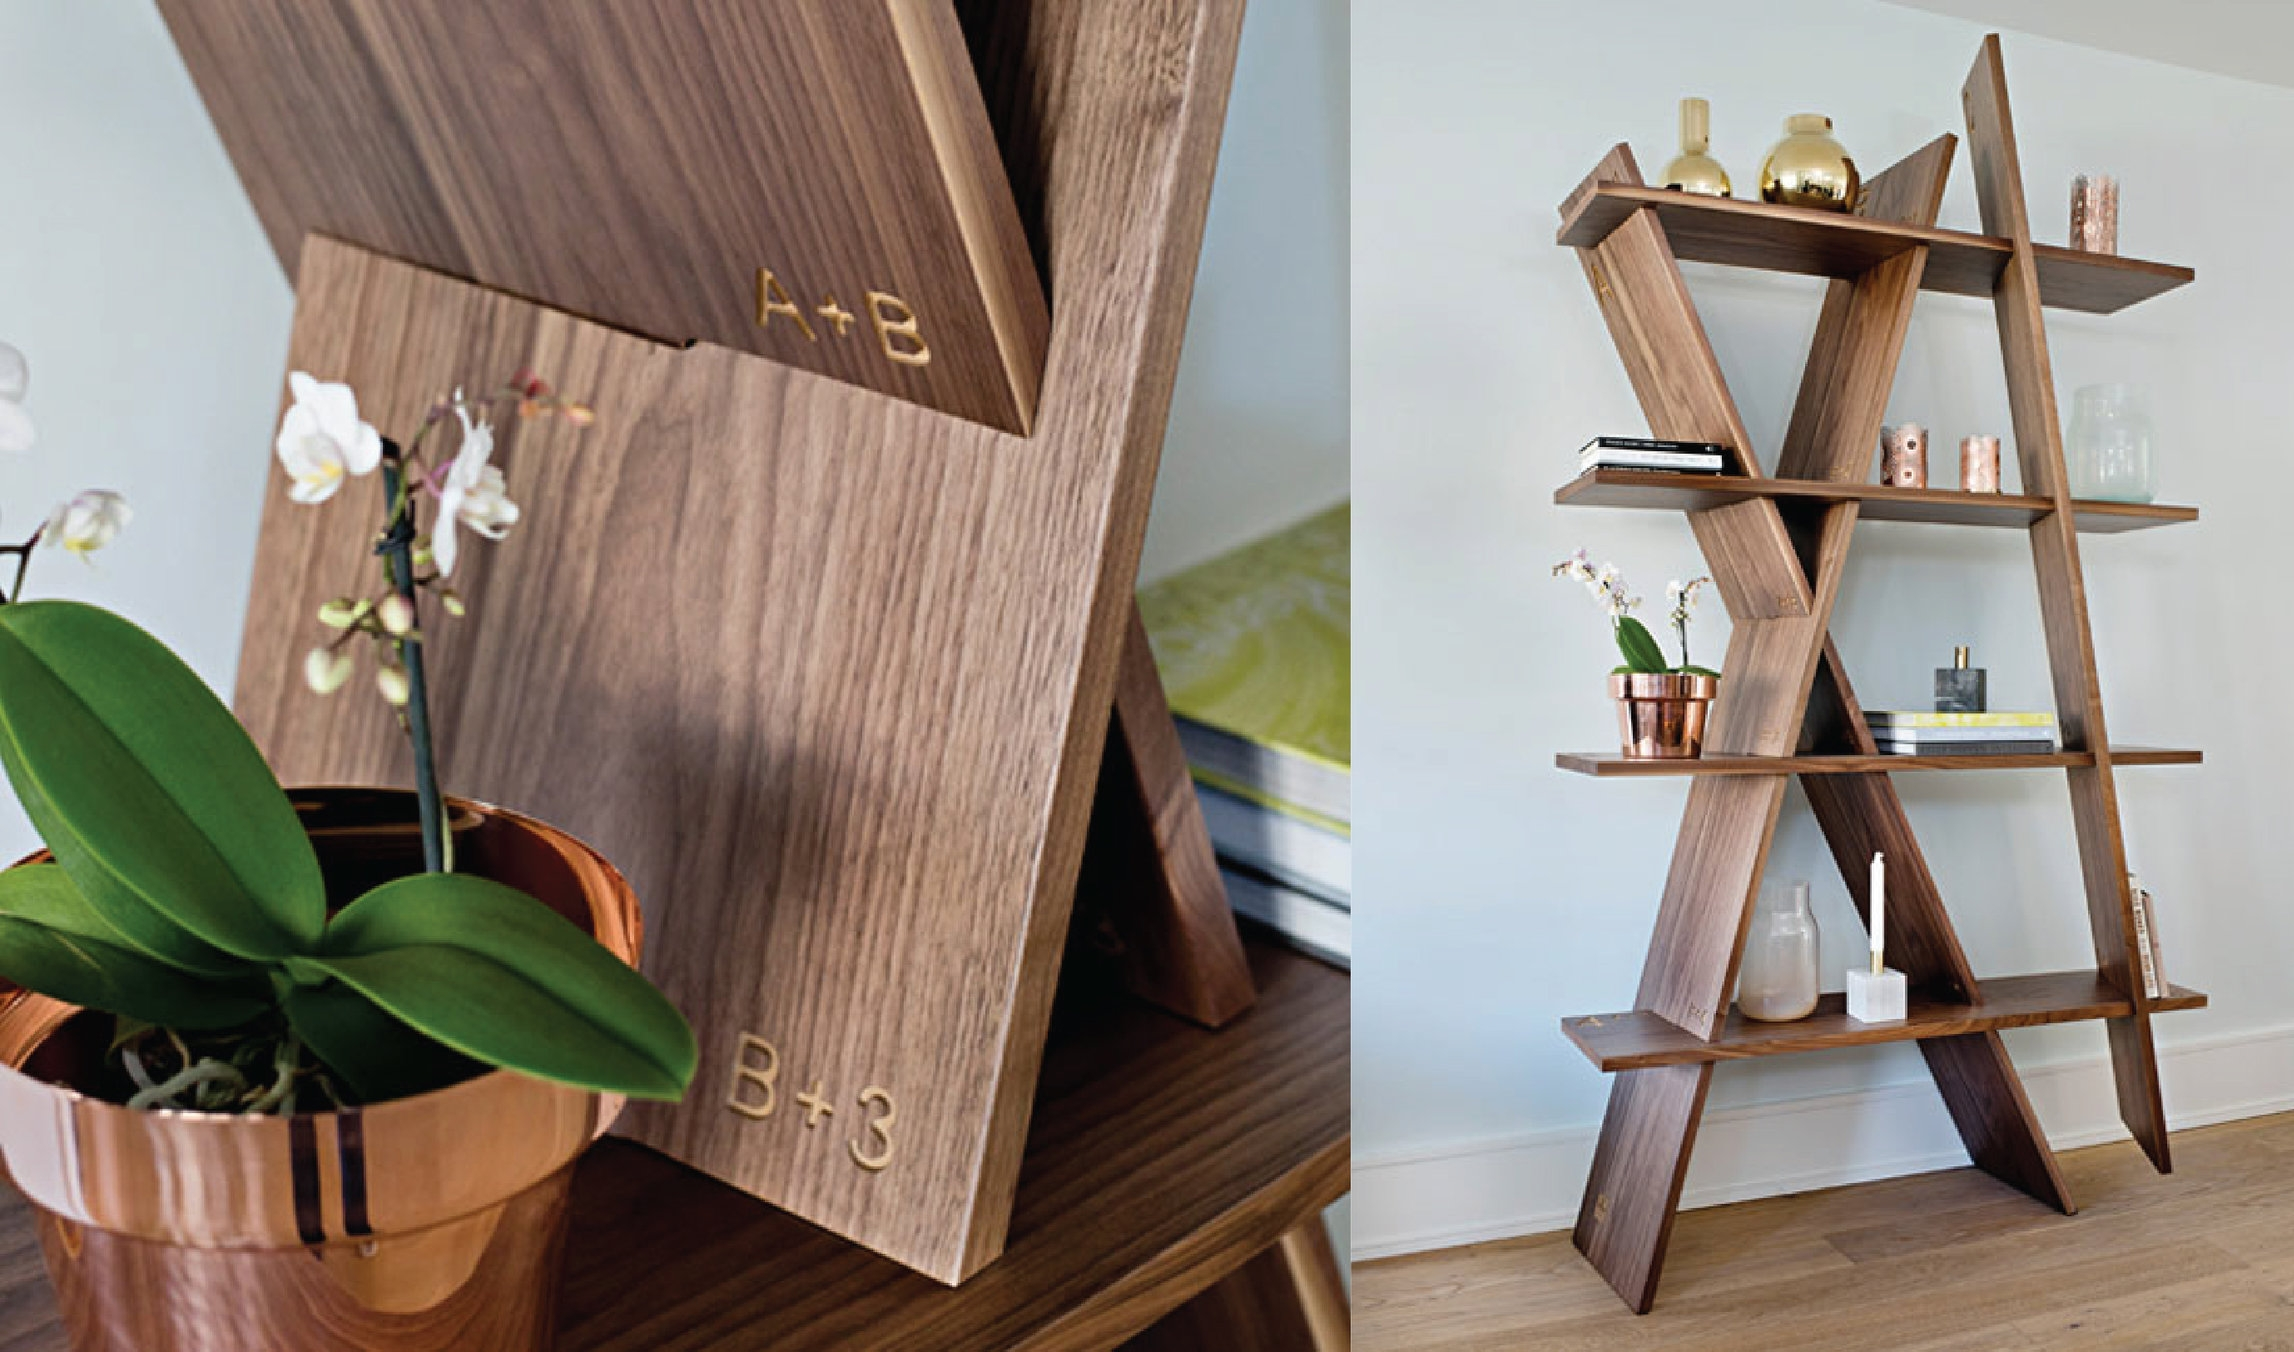 Besides its original design,  XI bookshelf  from WEWOOD can be also assembled very easily without tools or screws.